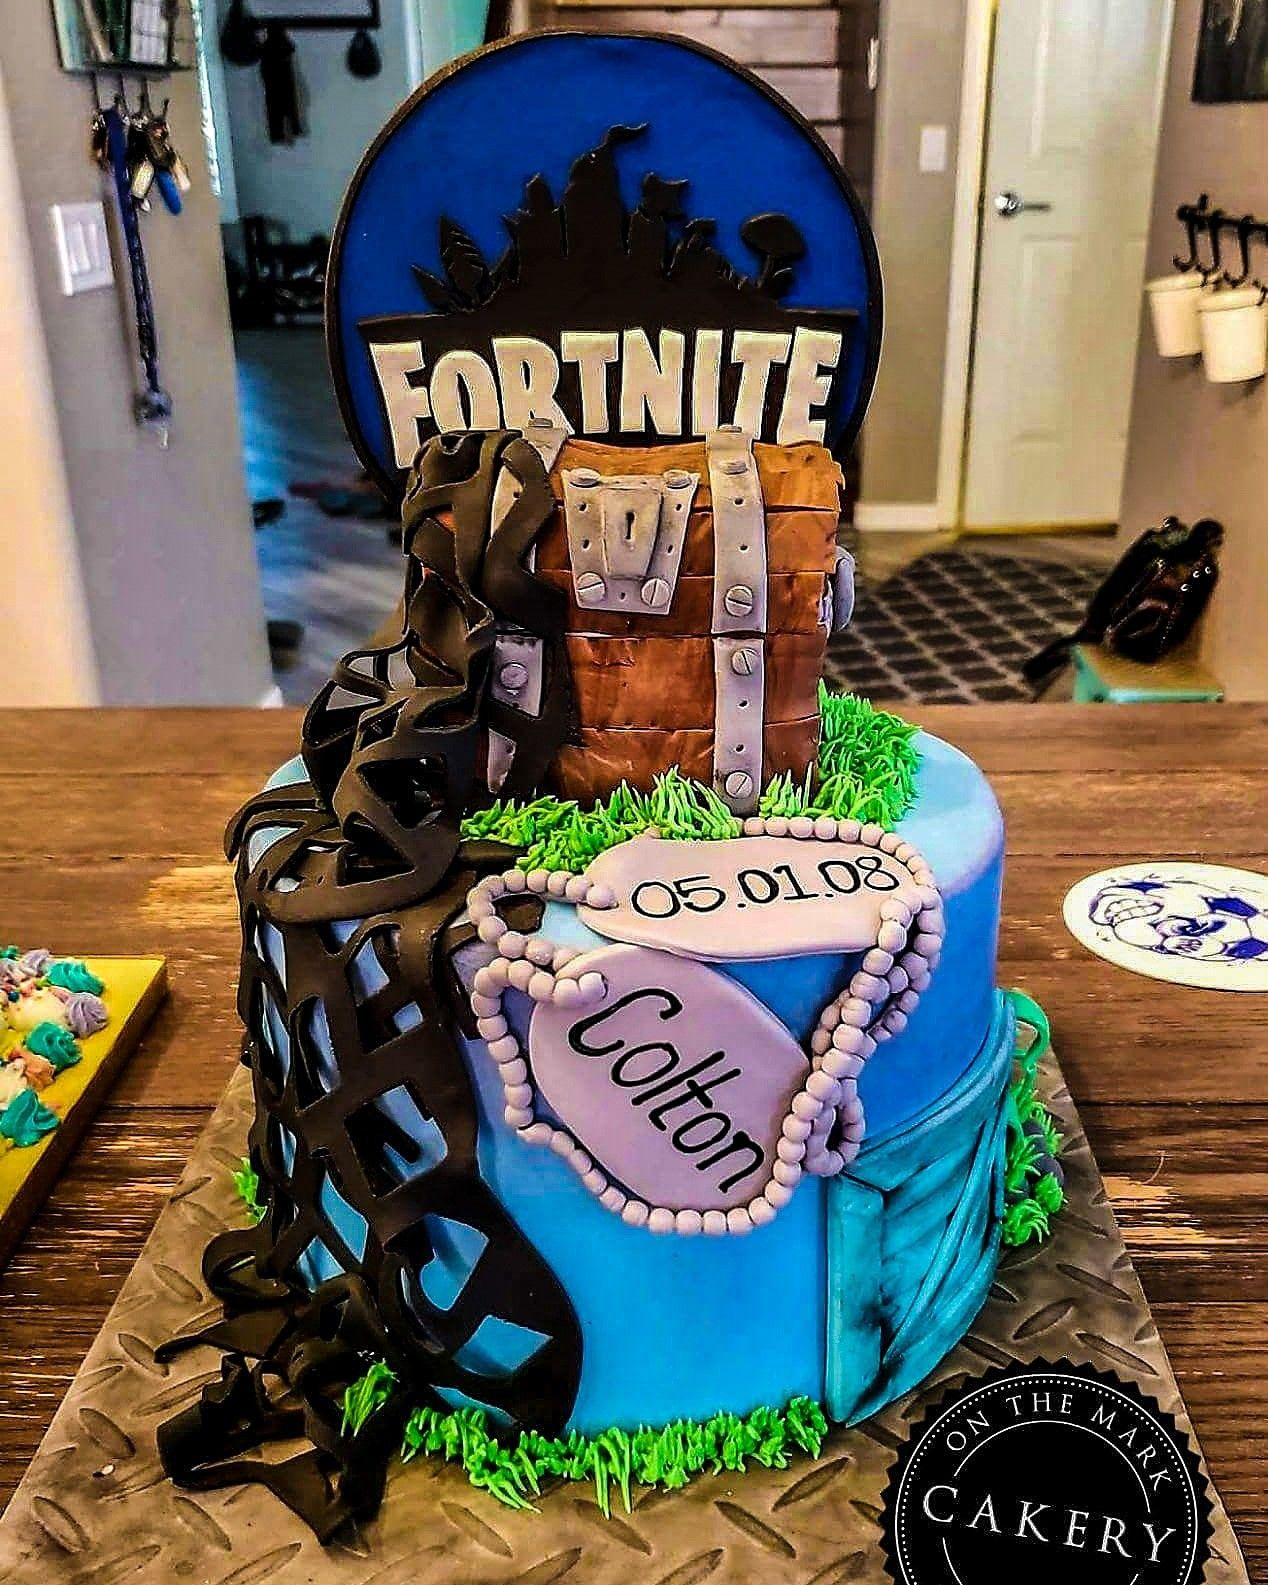 Fortnite Inspired Birthday Cake Perfect For Your Gamery Age